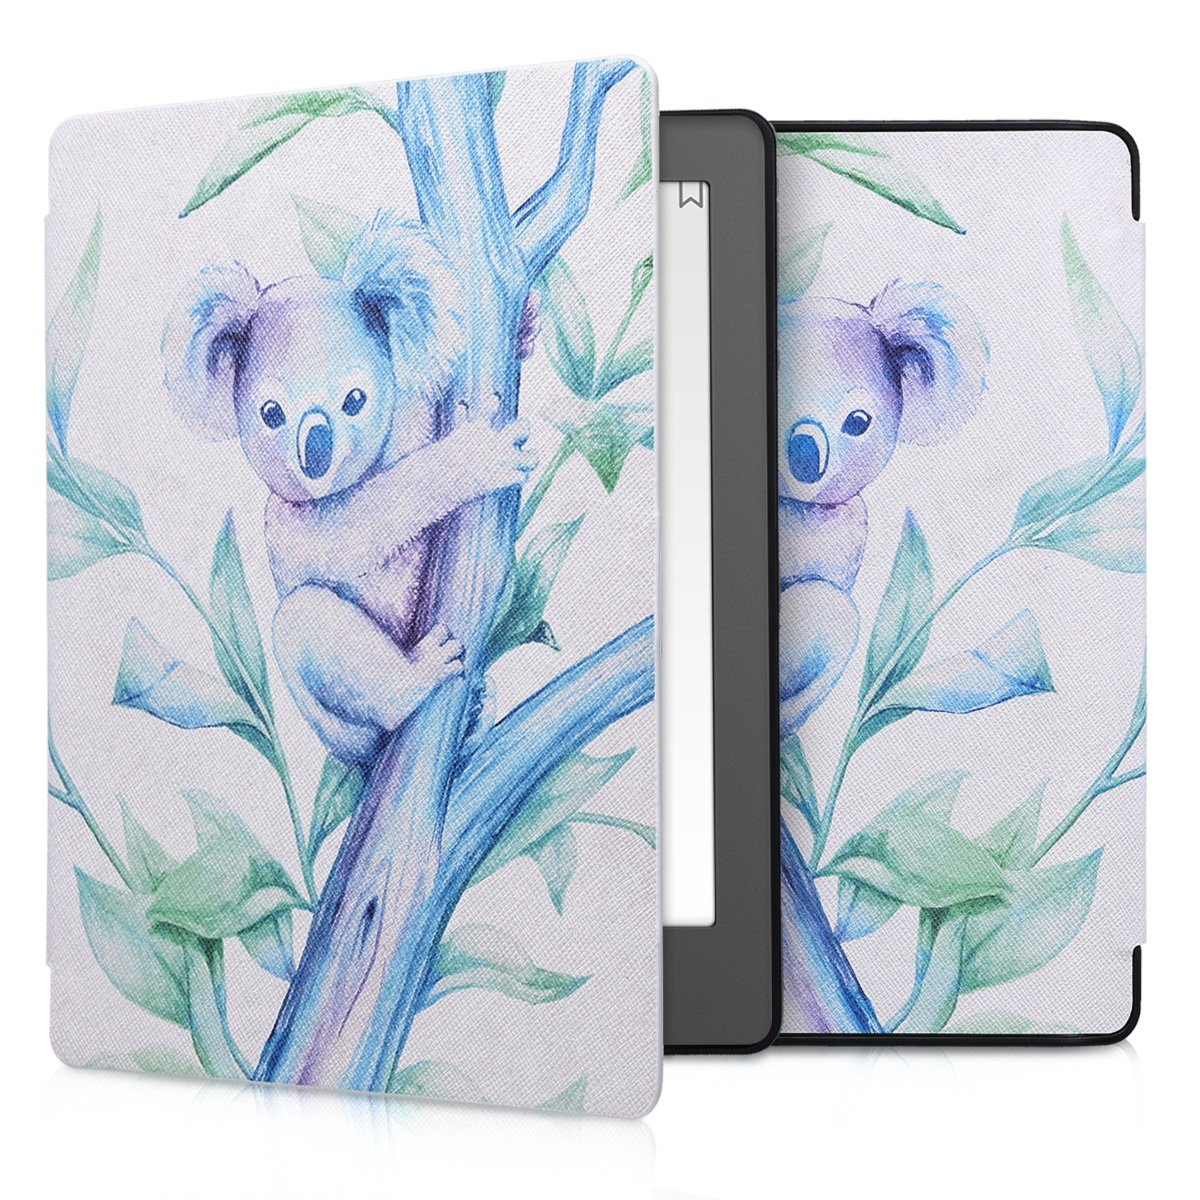 kwmobile Case for Kobo Aura H2O Edition 2 - Book Style PU Leather Protective e-Reader Cover Folio Case - blue violet white